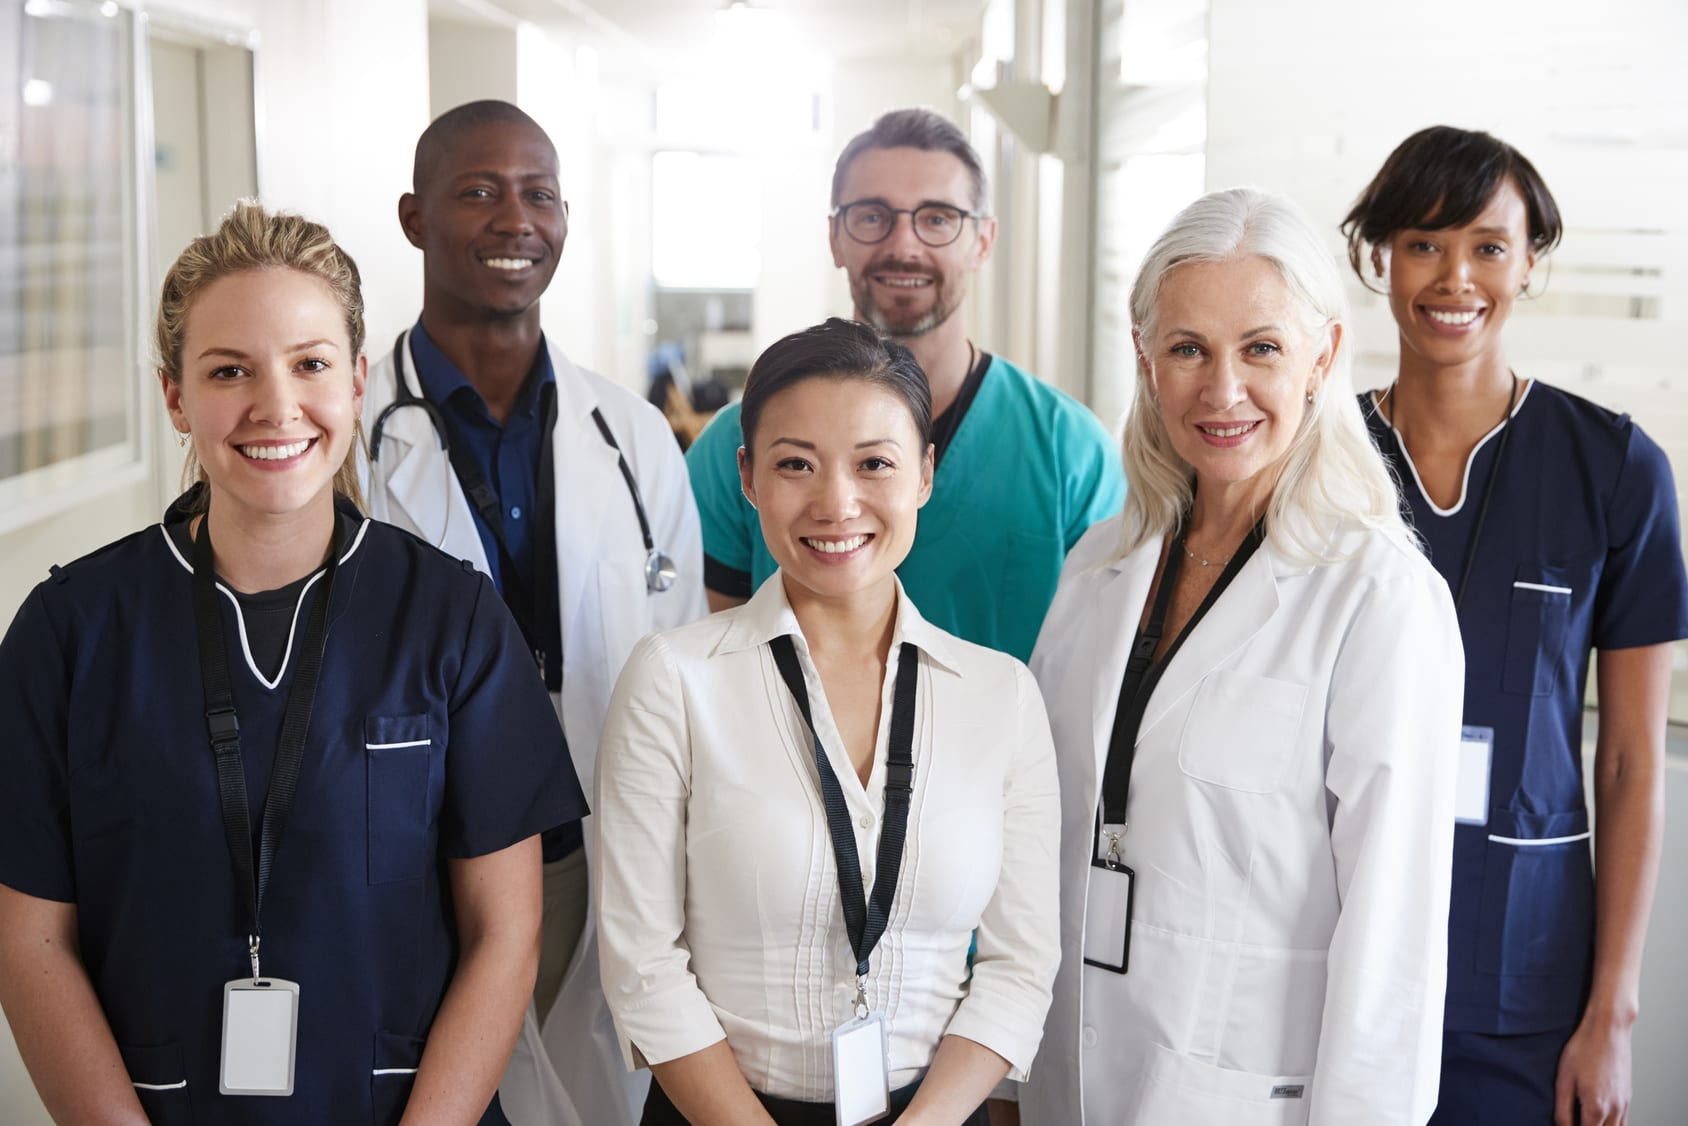 Group Health Insurance Quotes